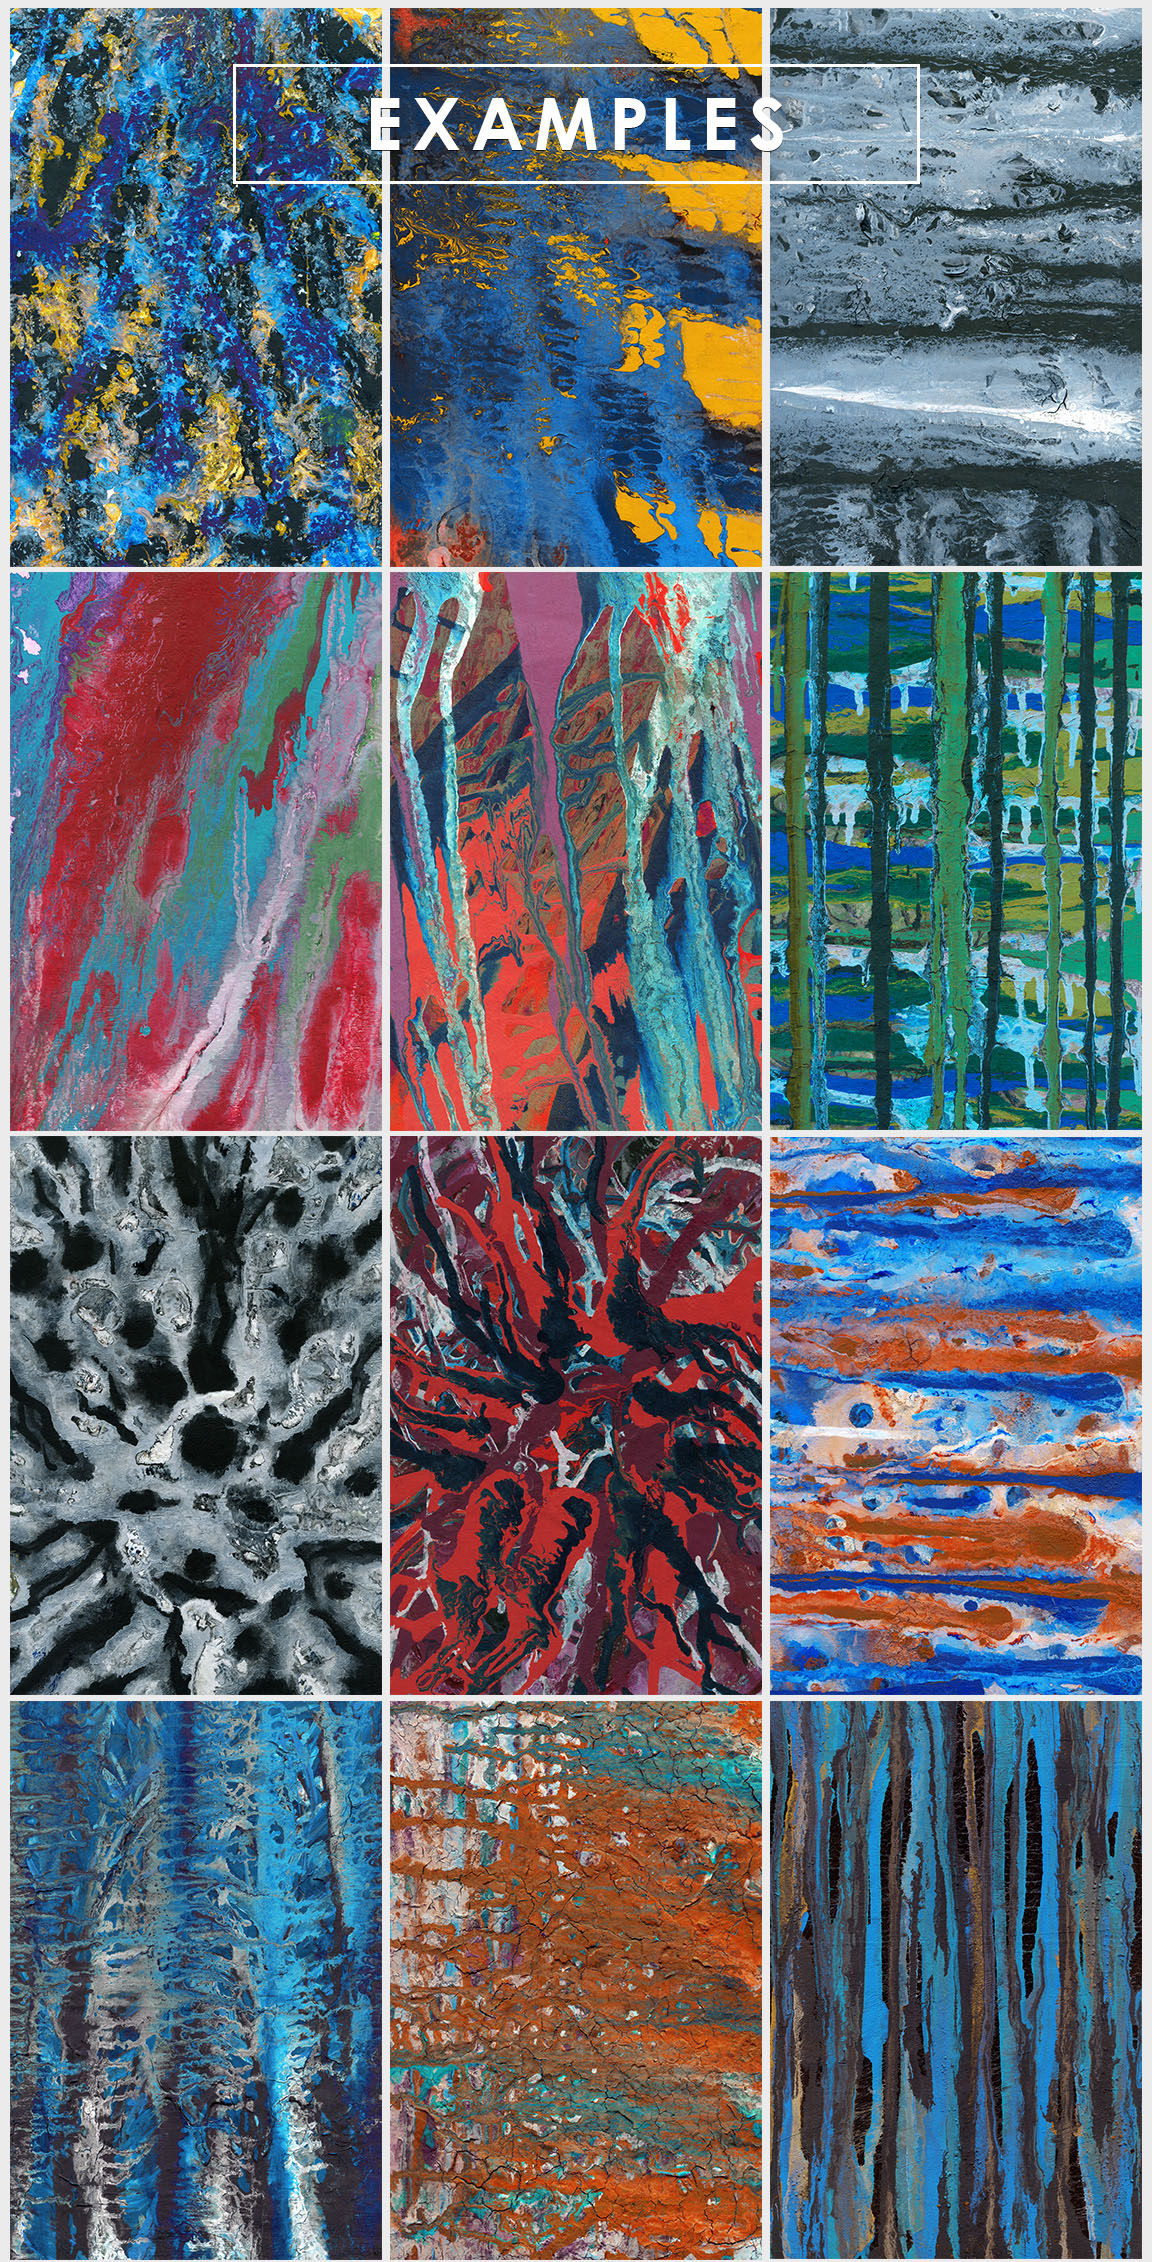 Abstract Paint Backgrounds Vol. 4